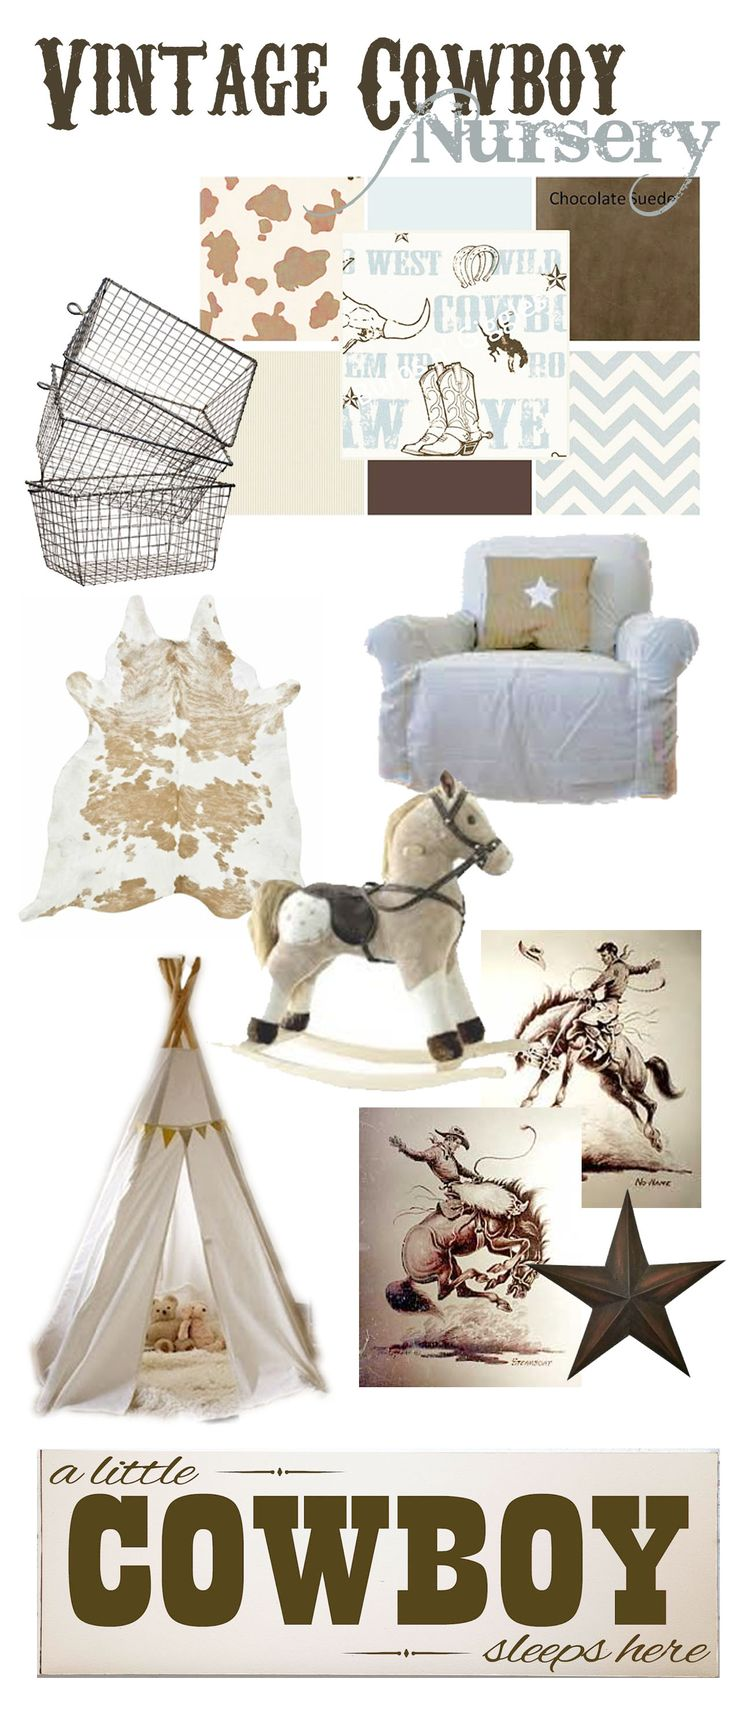 Vintage cowboy-- Whimsical spin on a cowboy nursery! Creams, browns, blue and white. Rocking horse, play teepee and vintage rodeo posters. Faux cowhide rug.